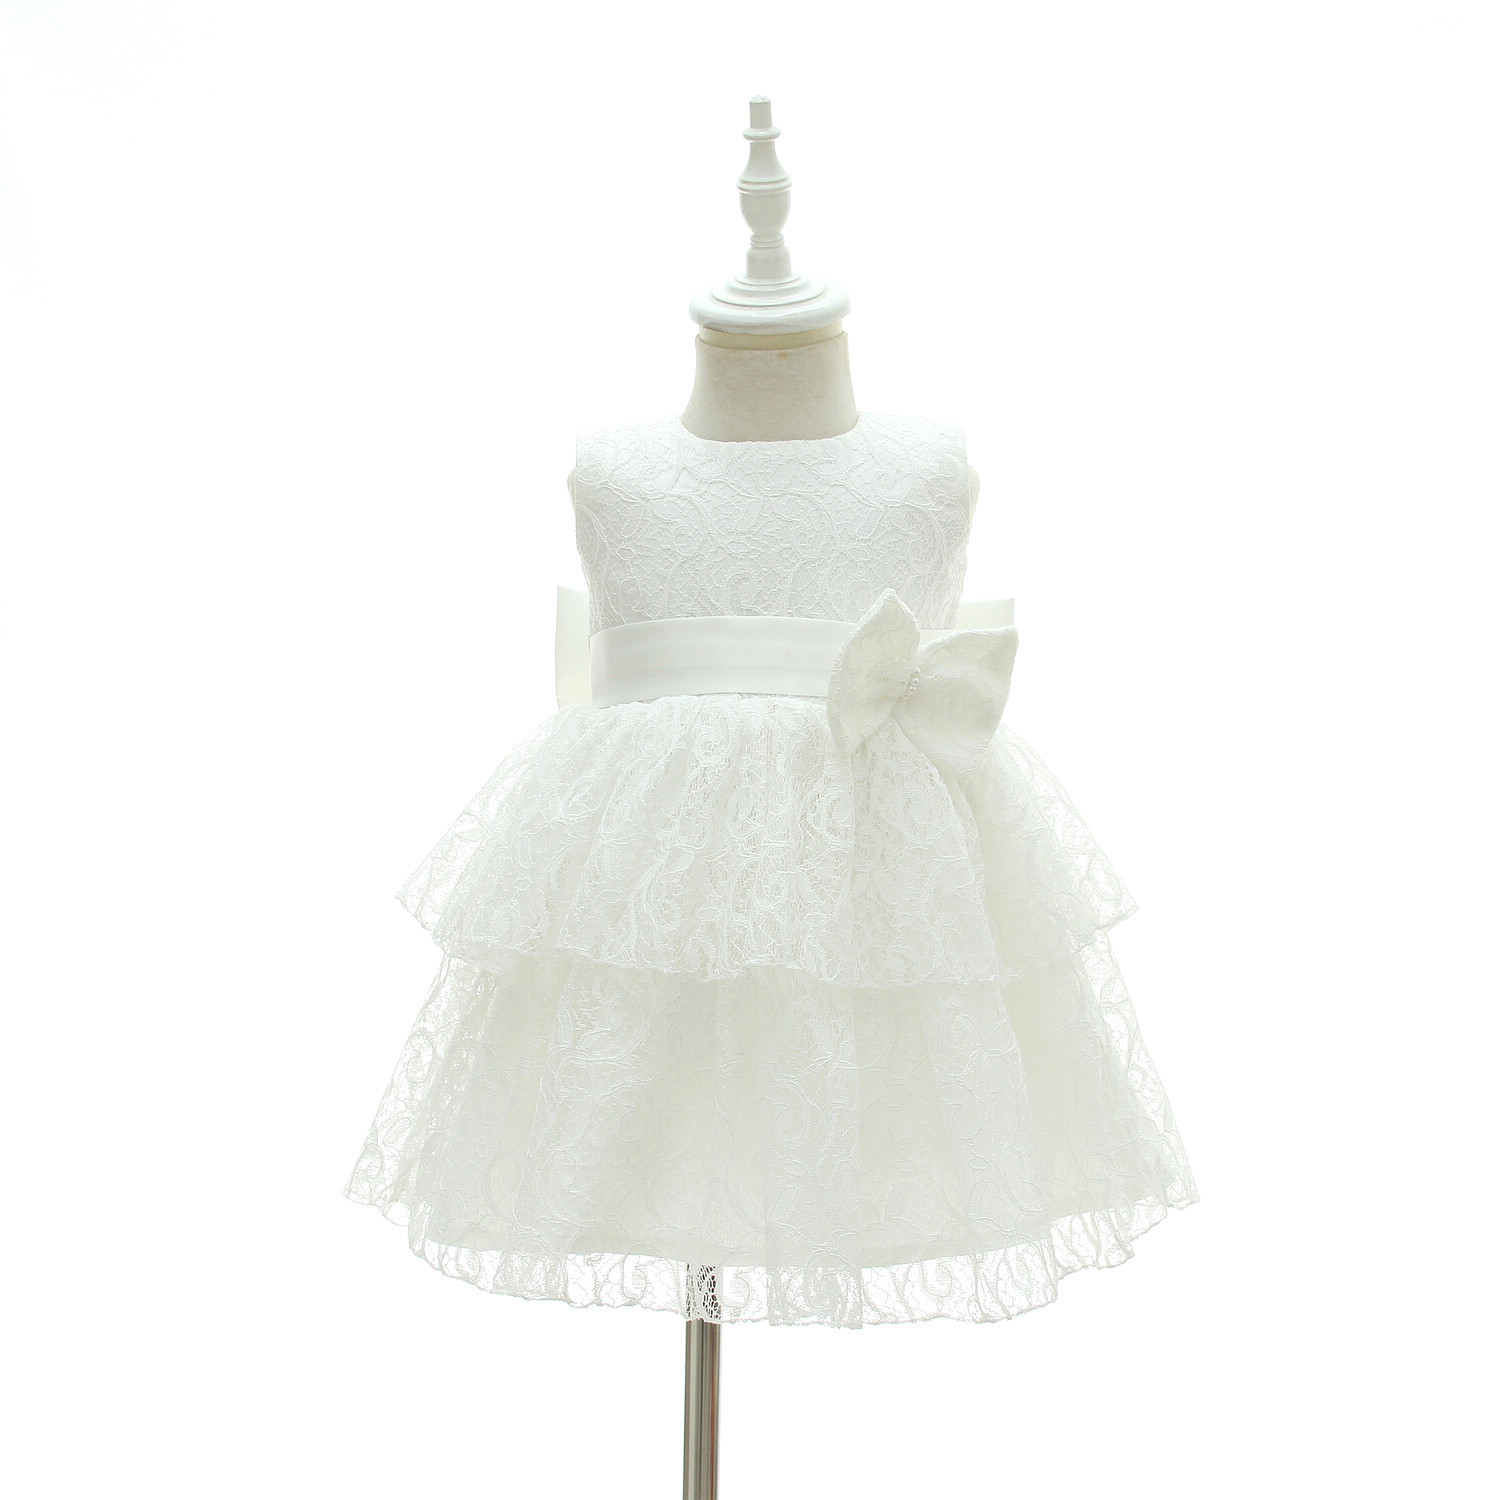 Newborn Babe Baby Girl Dress Little Bridesmaid Clothes White Beautiful Christening Gown Baby Baptism First Birthday Outfits